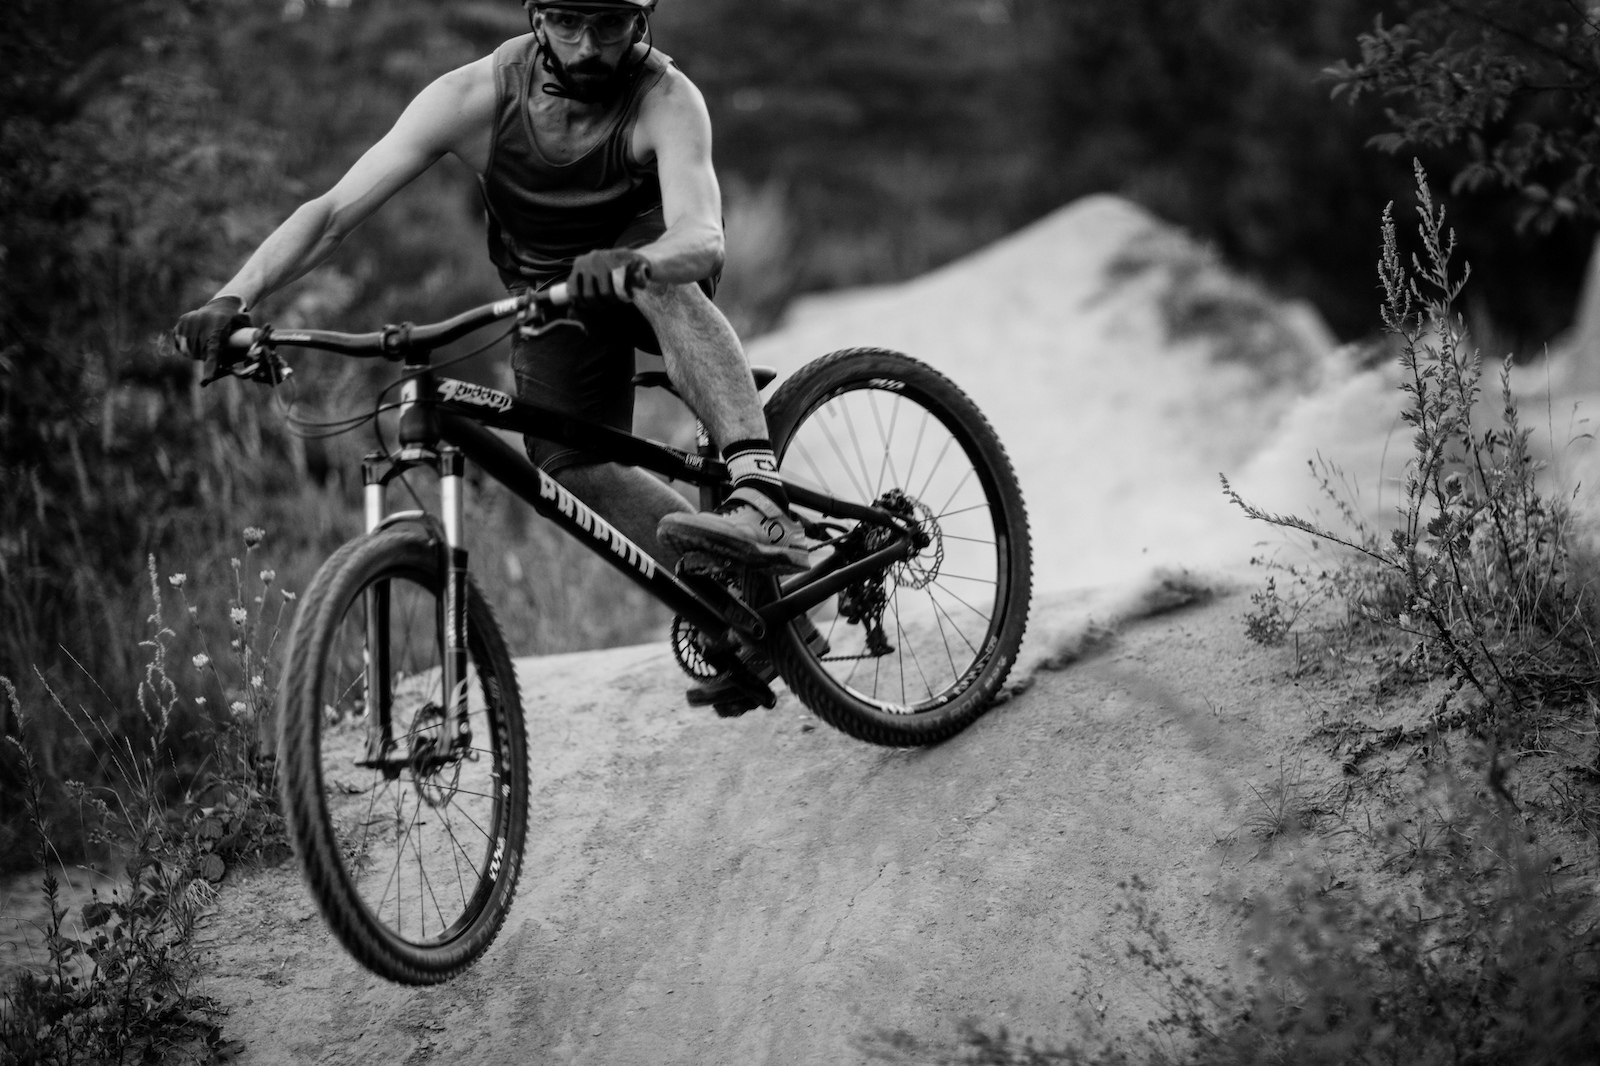 scrub riding technical trails with click pedals ...what a racer.